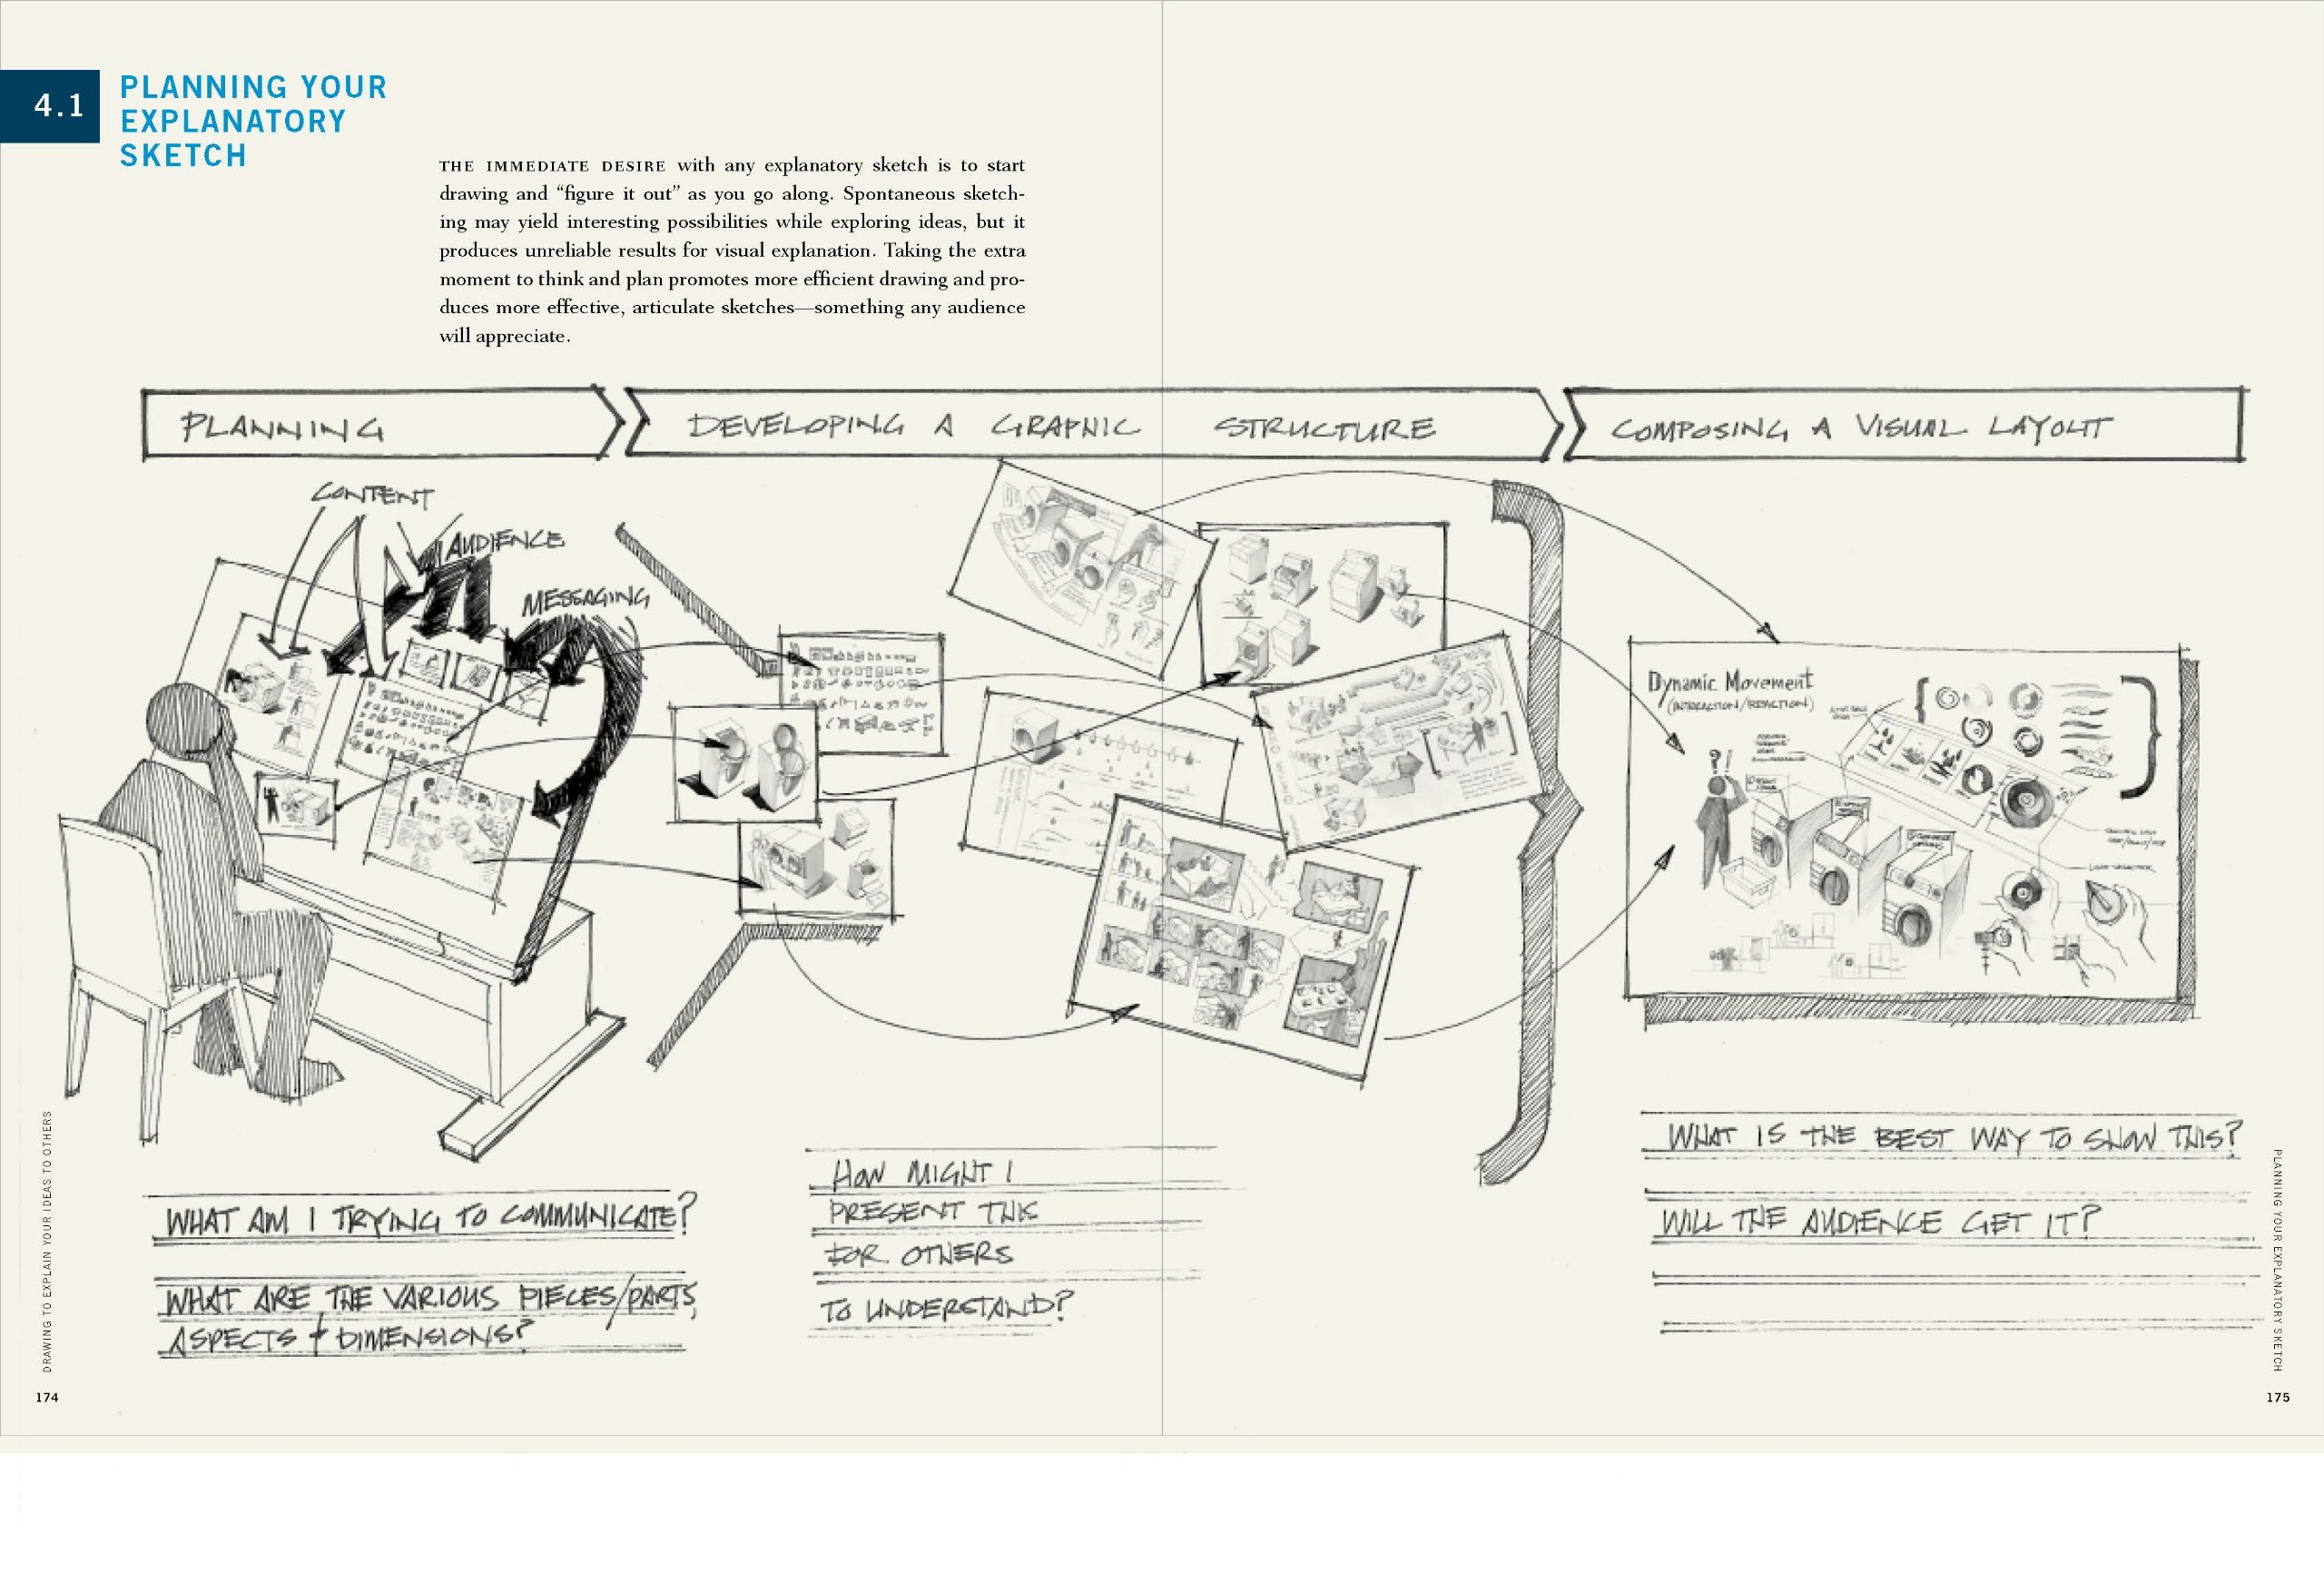 Drawing Ideas: A Hand-Drawn Approach for Better Design by Mark Baskinger & William Bardel